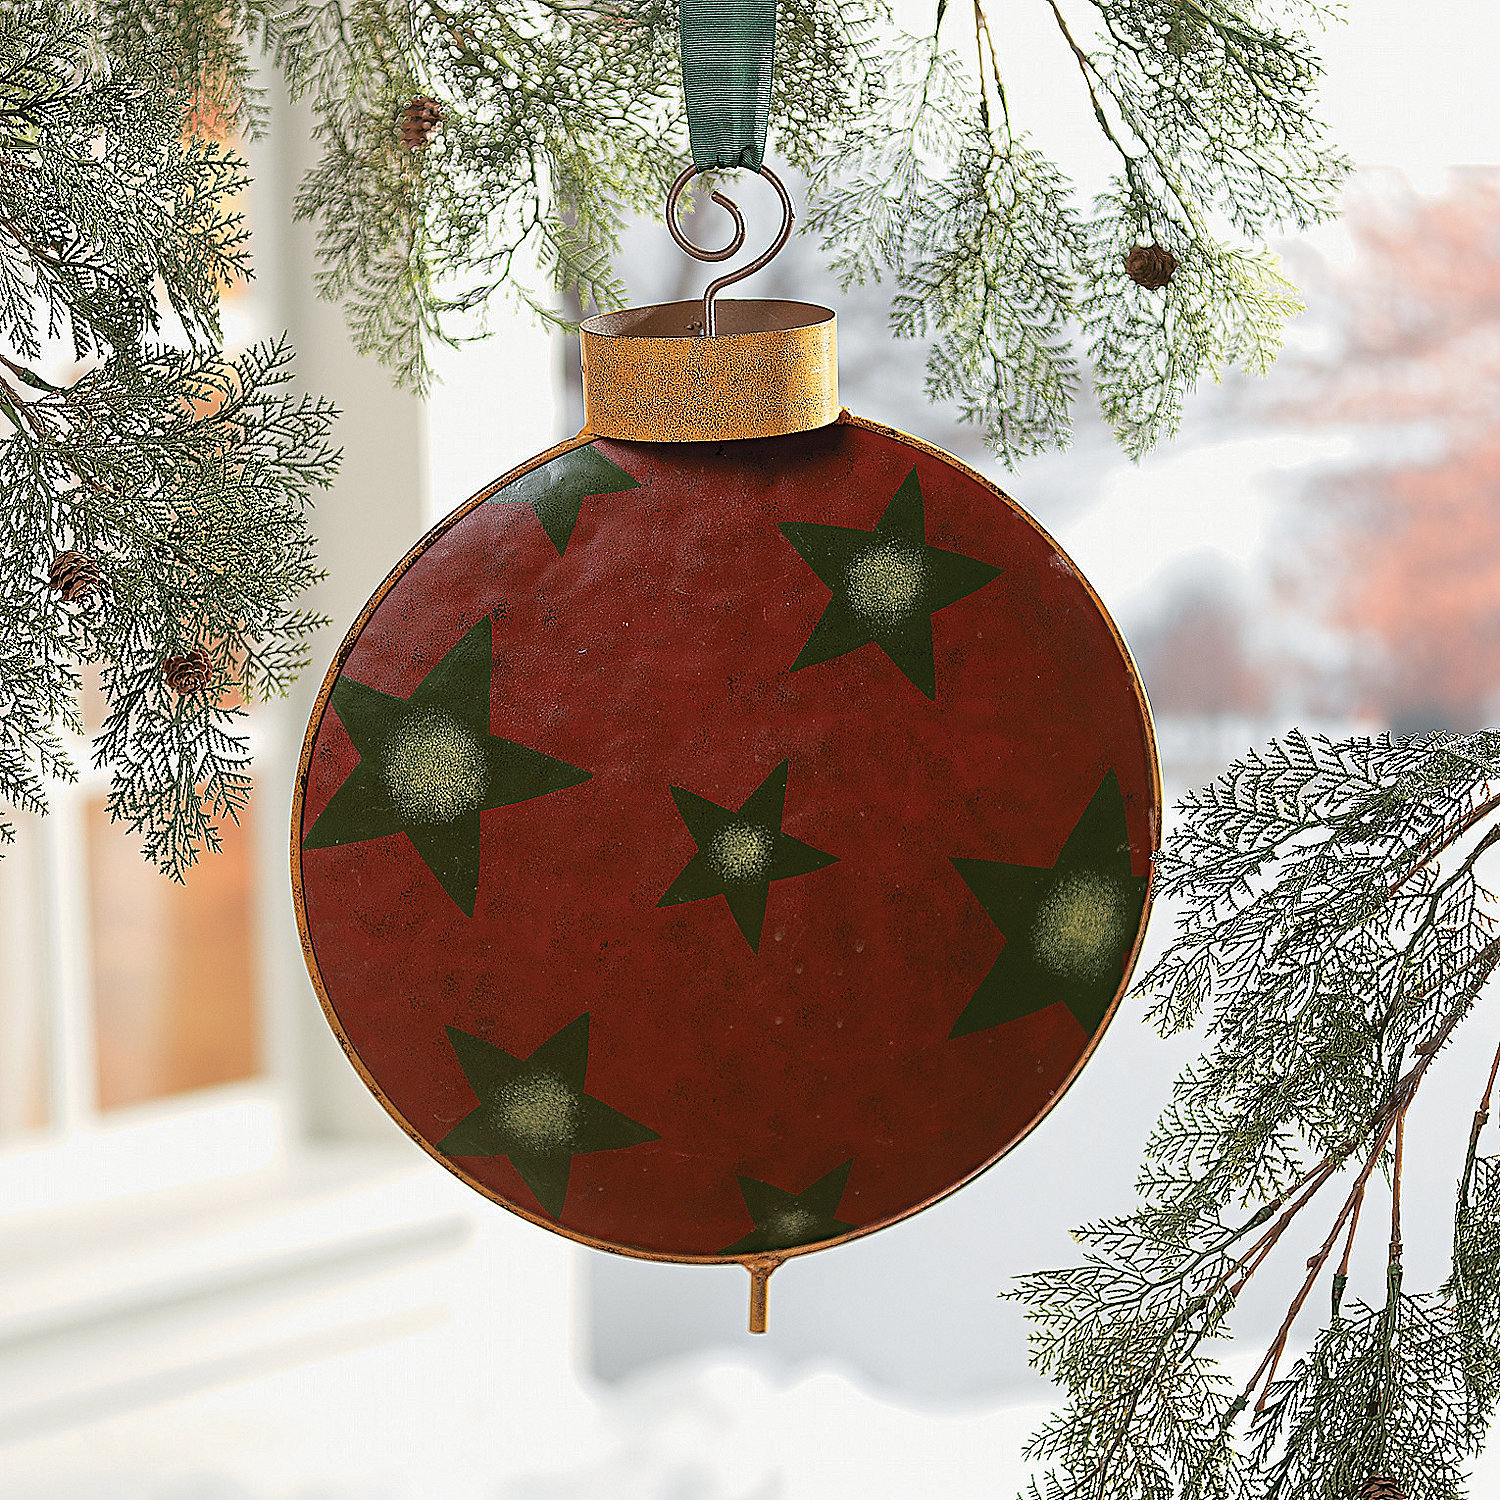 95 Amazing Outdoor Christmas Decorations: Ornament Yard Stakes